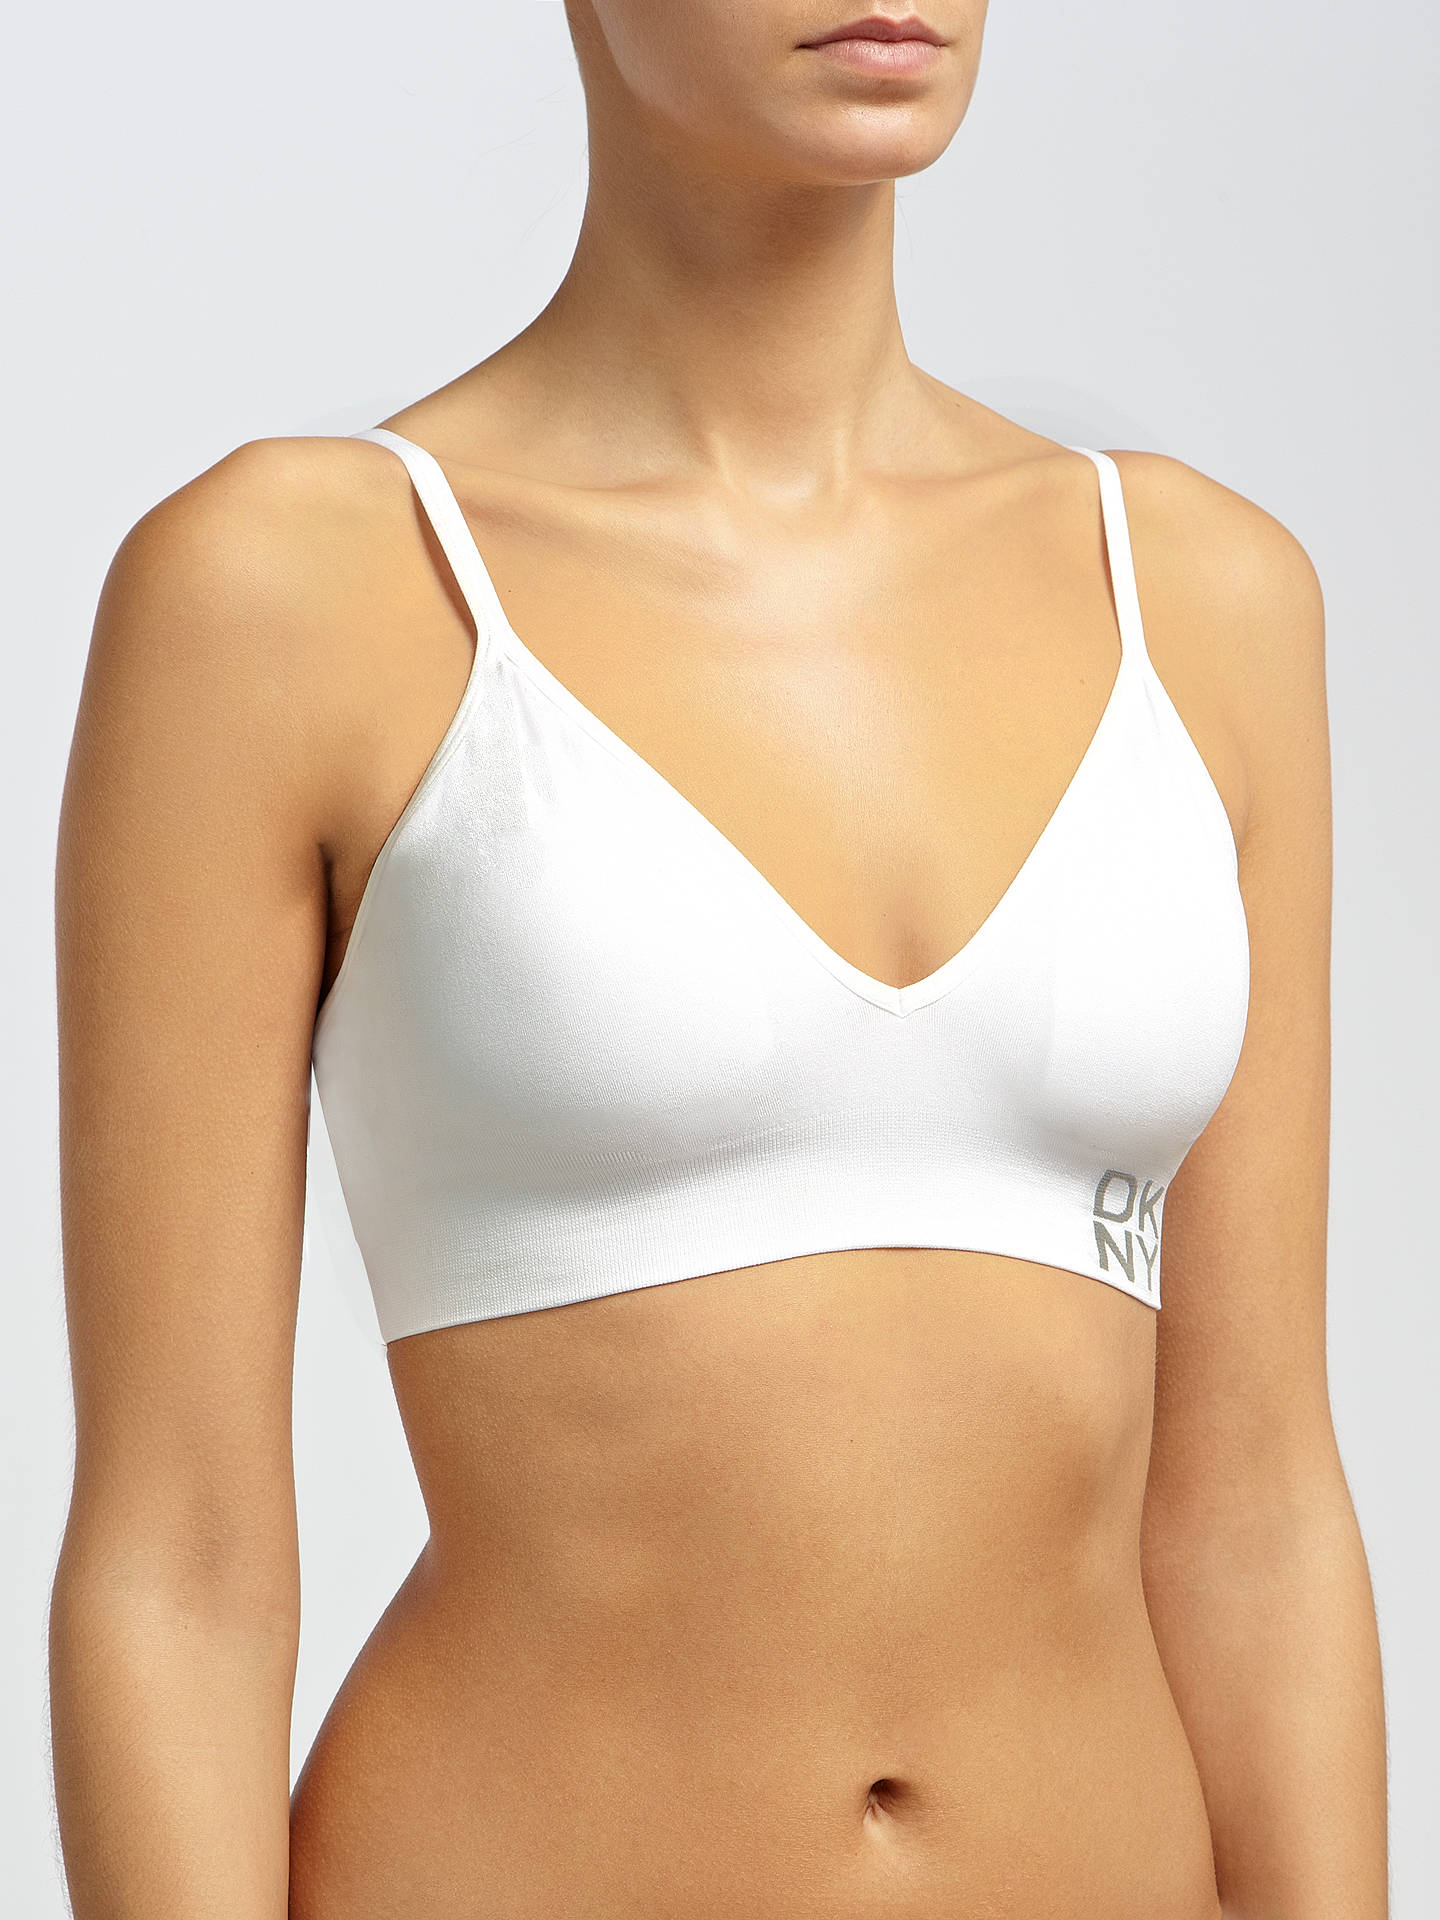 6a0c4c581c4b0 Buy DKNY Energy Seamless Non Wired Bralet